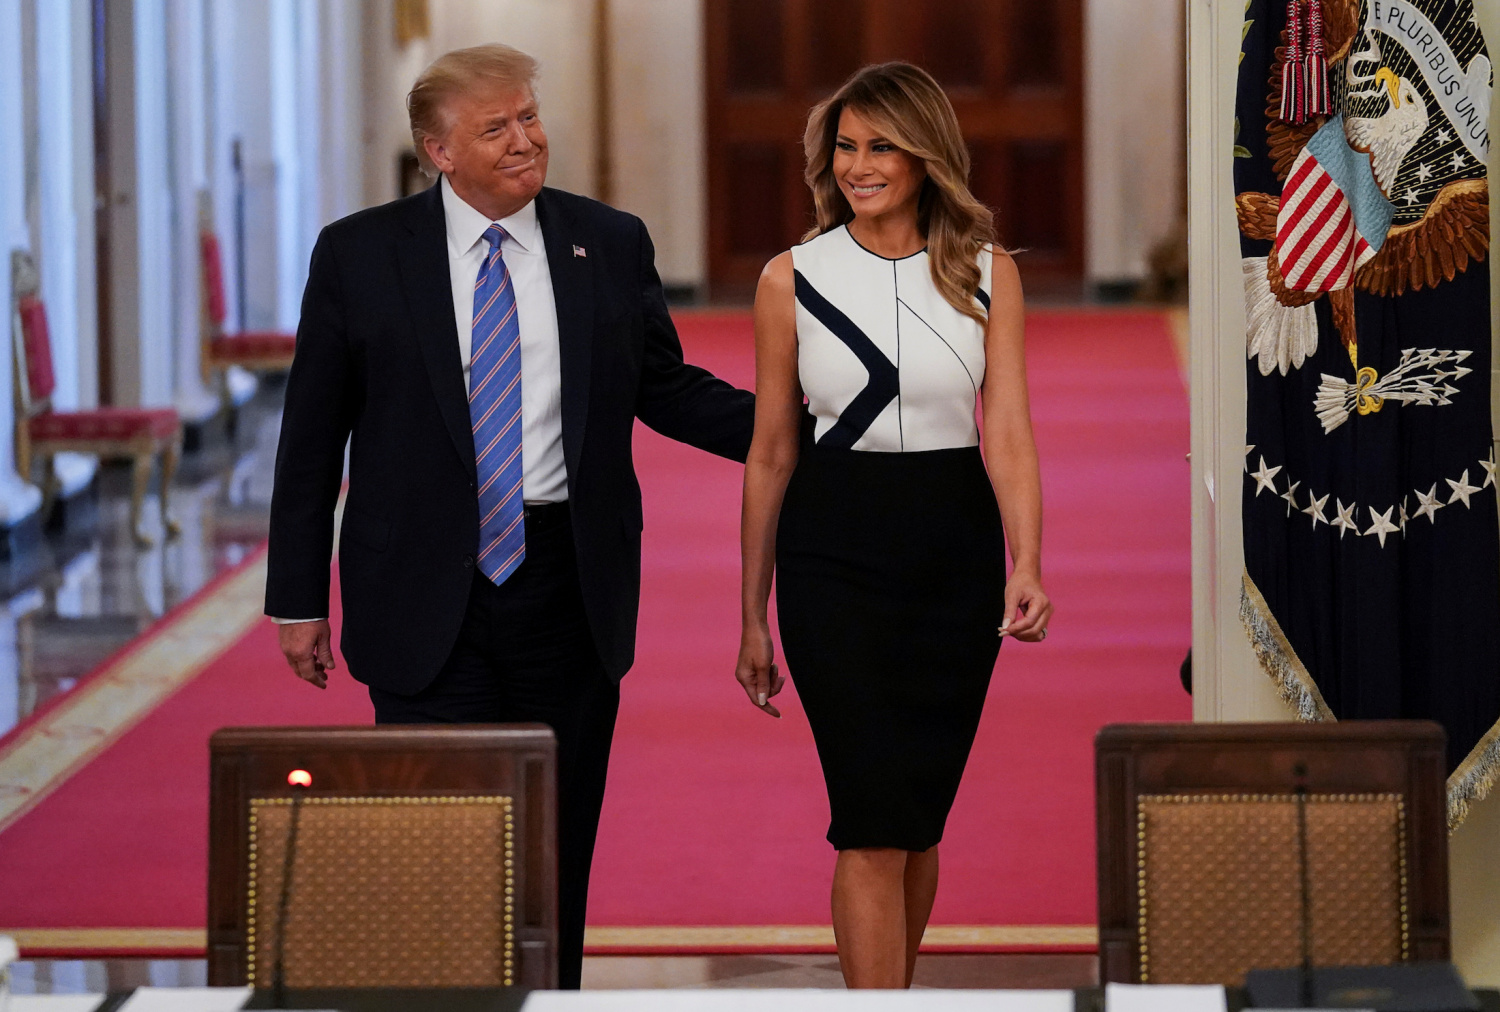 School Denies Claims Melania Trump S Mt Rushmore Dress Was Designed By Child Sex Trafficking Victims